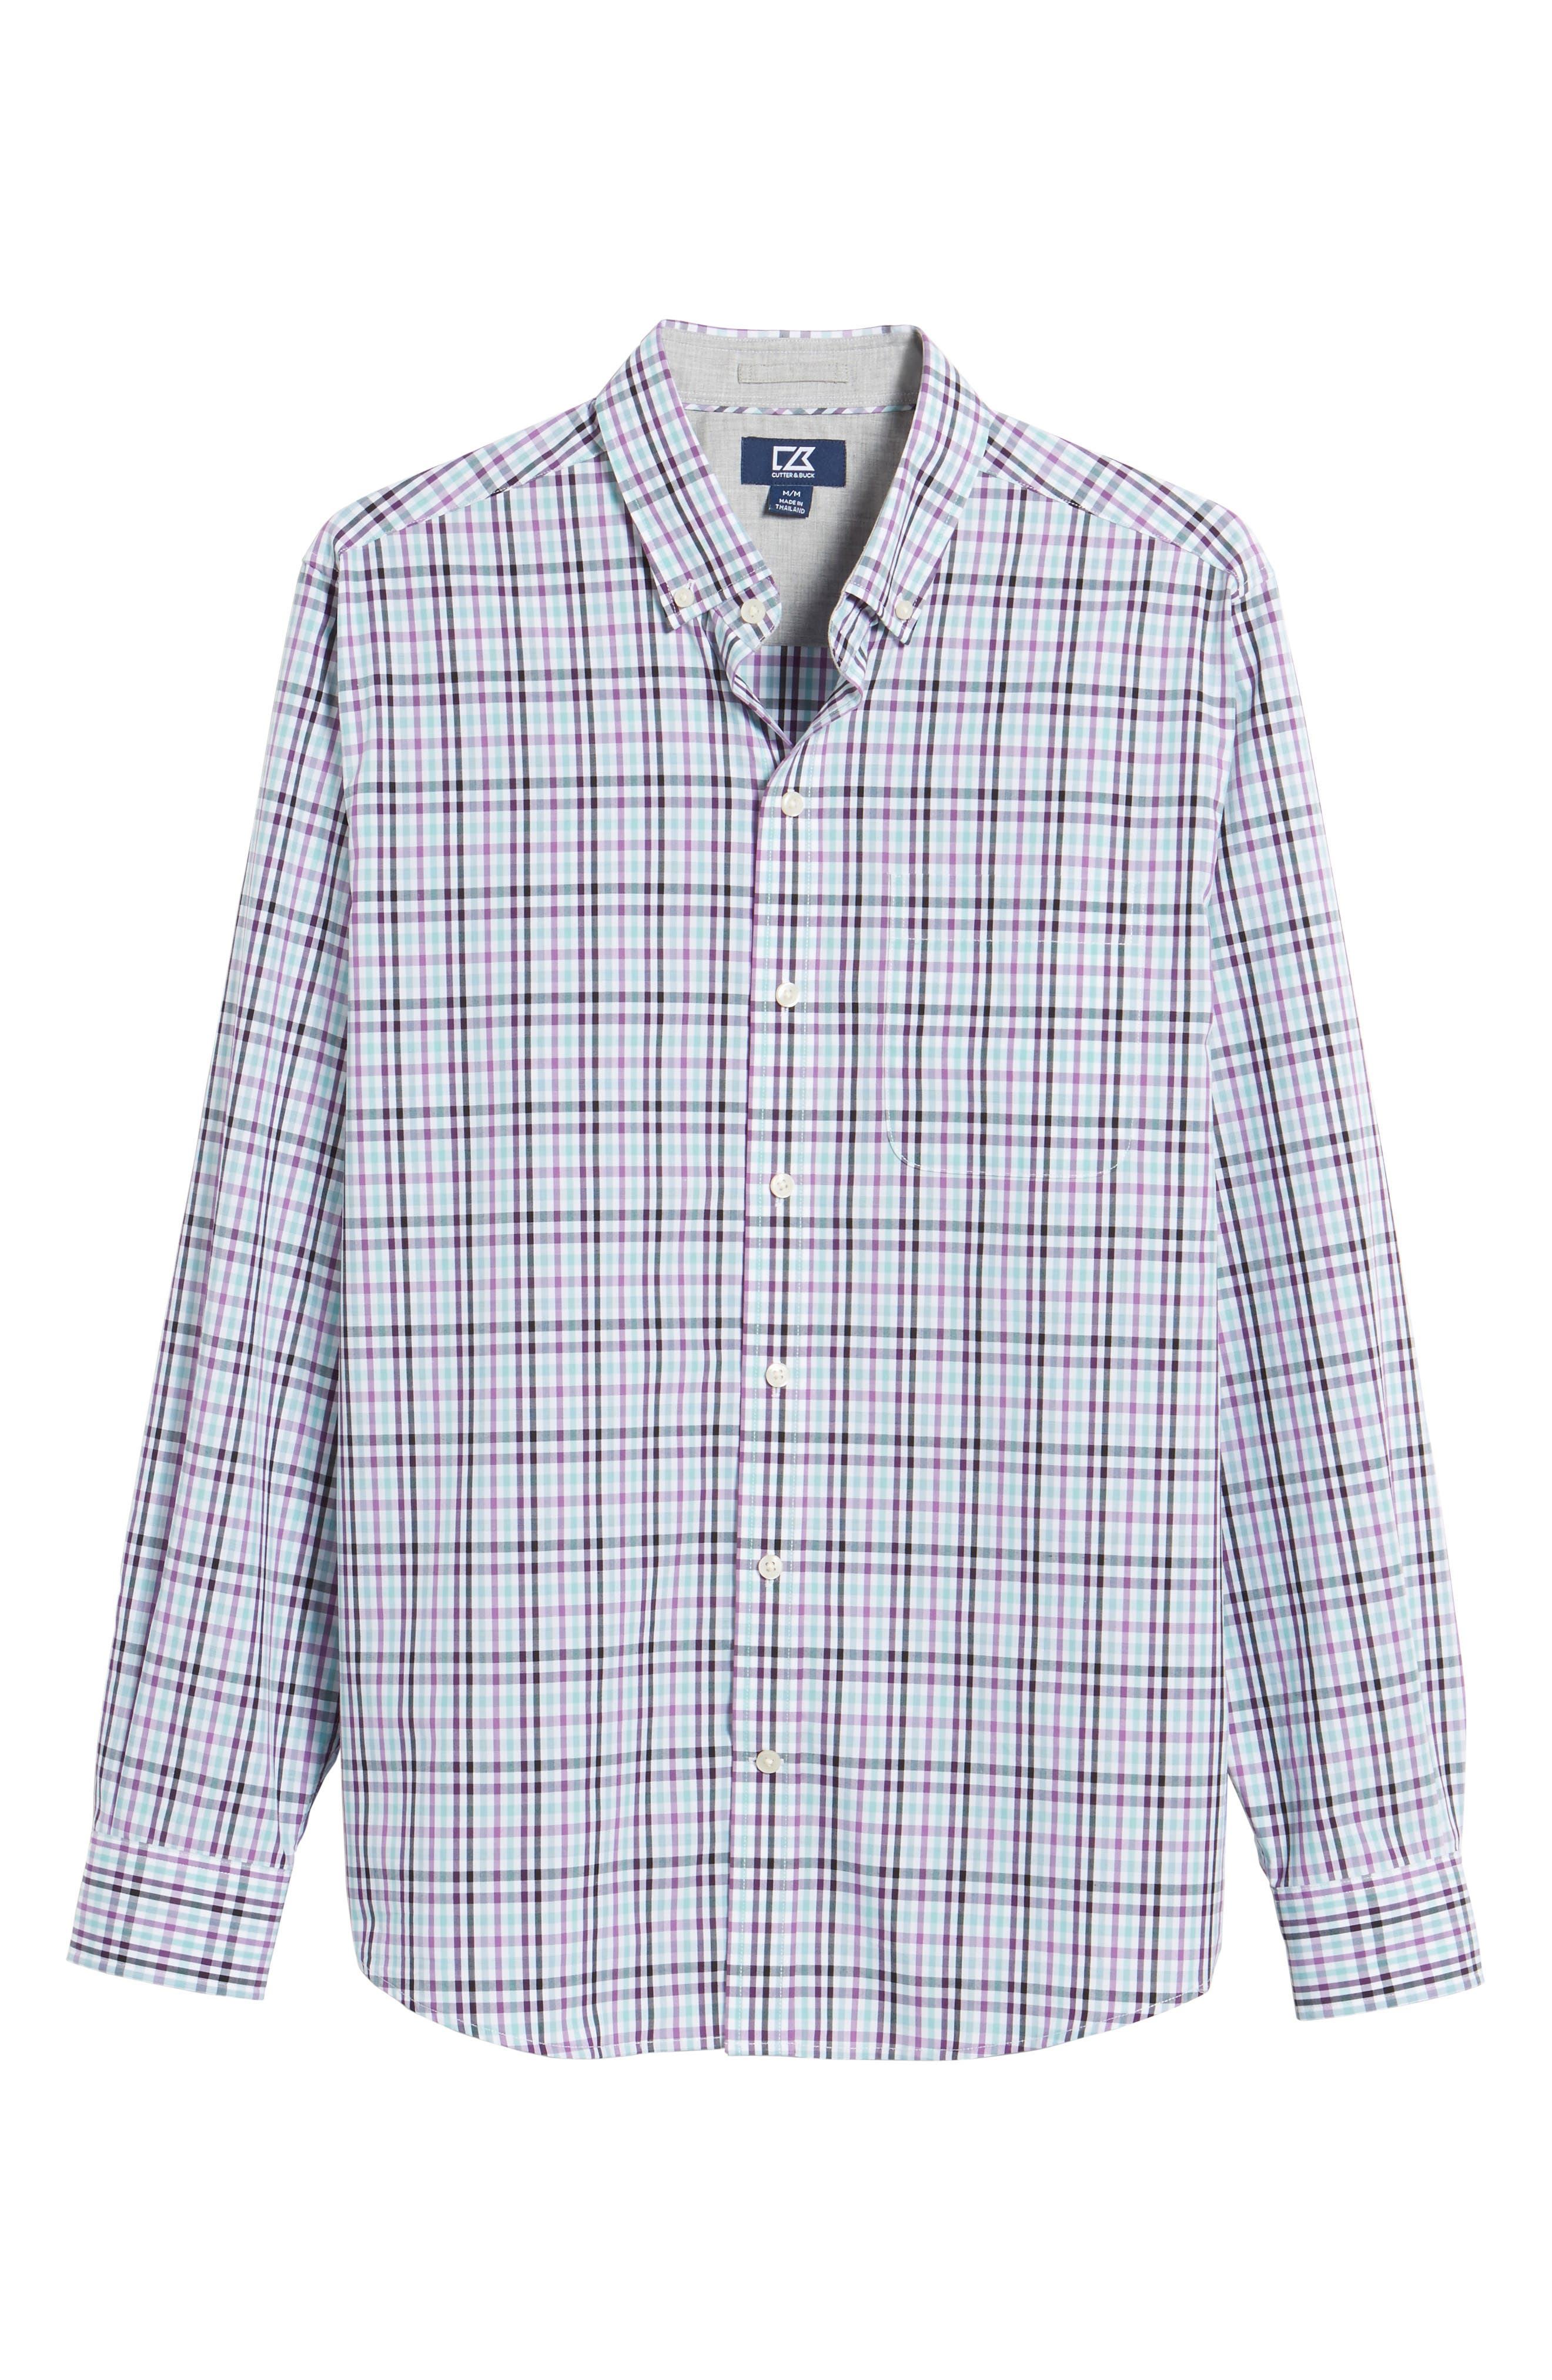 Irving Non-Iron Plaid Sport Shirt,                             Alternate thumbnail 6, color,                             522